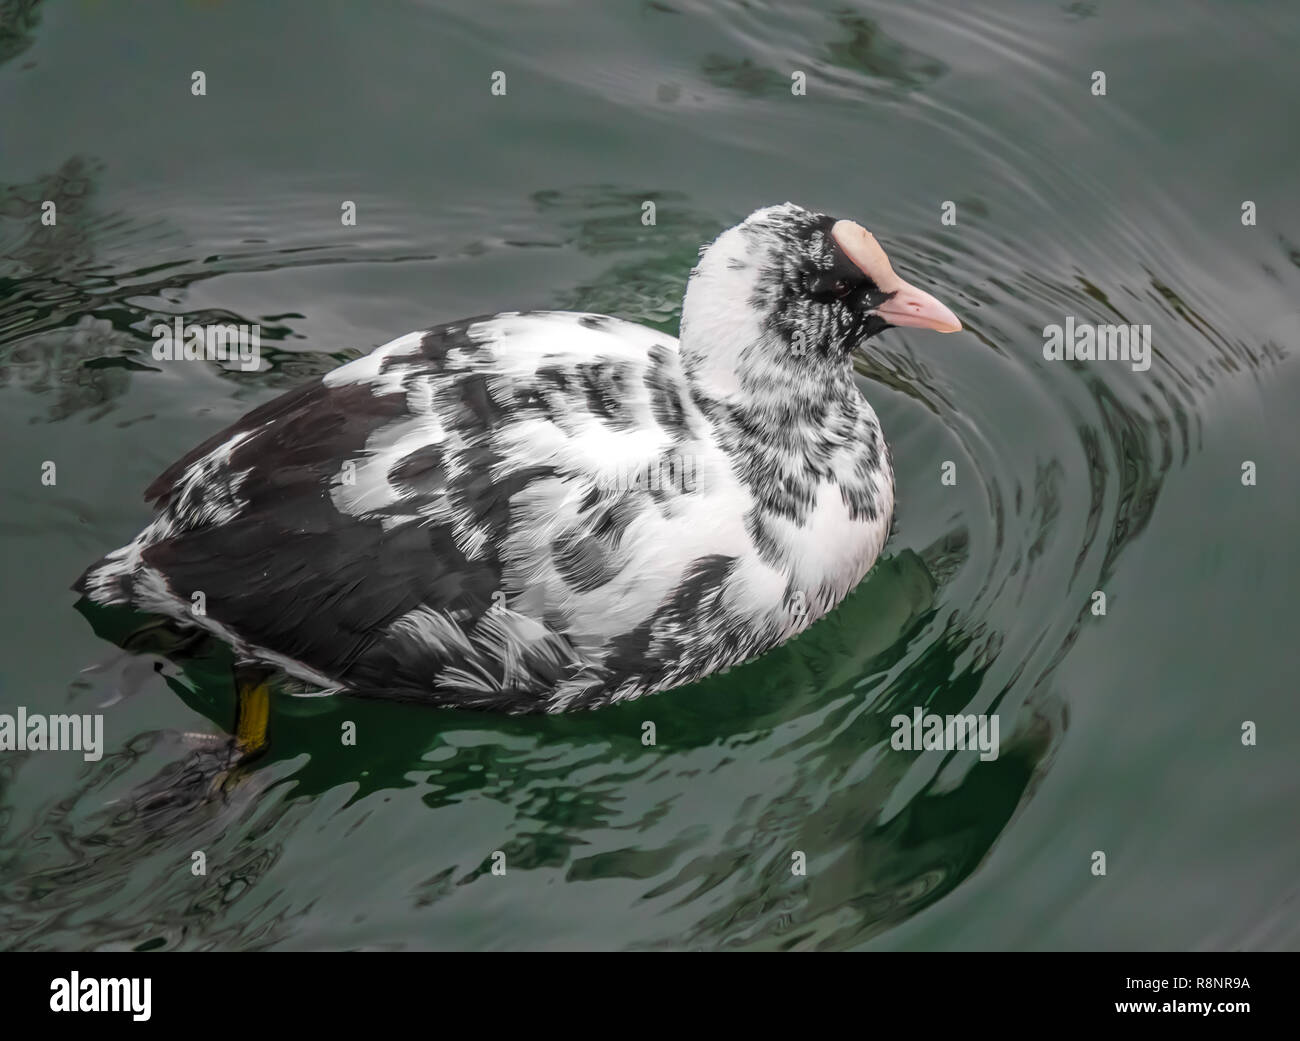 An unusual partial albino (Leucism) coot on the shores of the Upper Zurich Lake (Obersee), near Rapperswil, Sankt Gallen, Switzerland - Stock Image